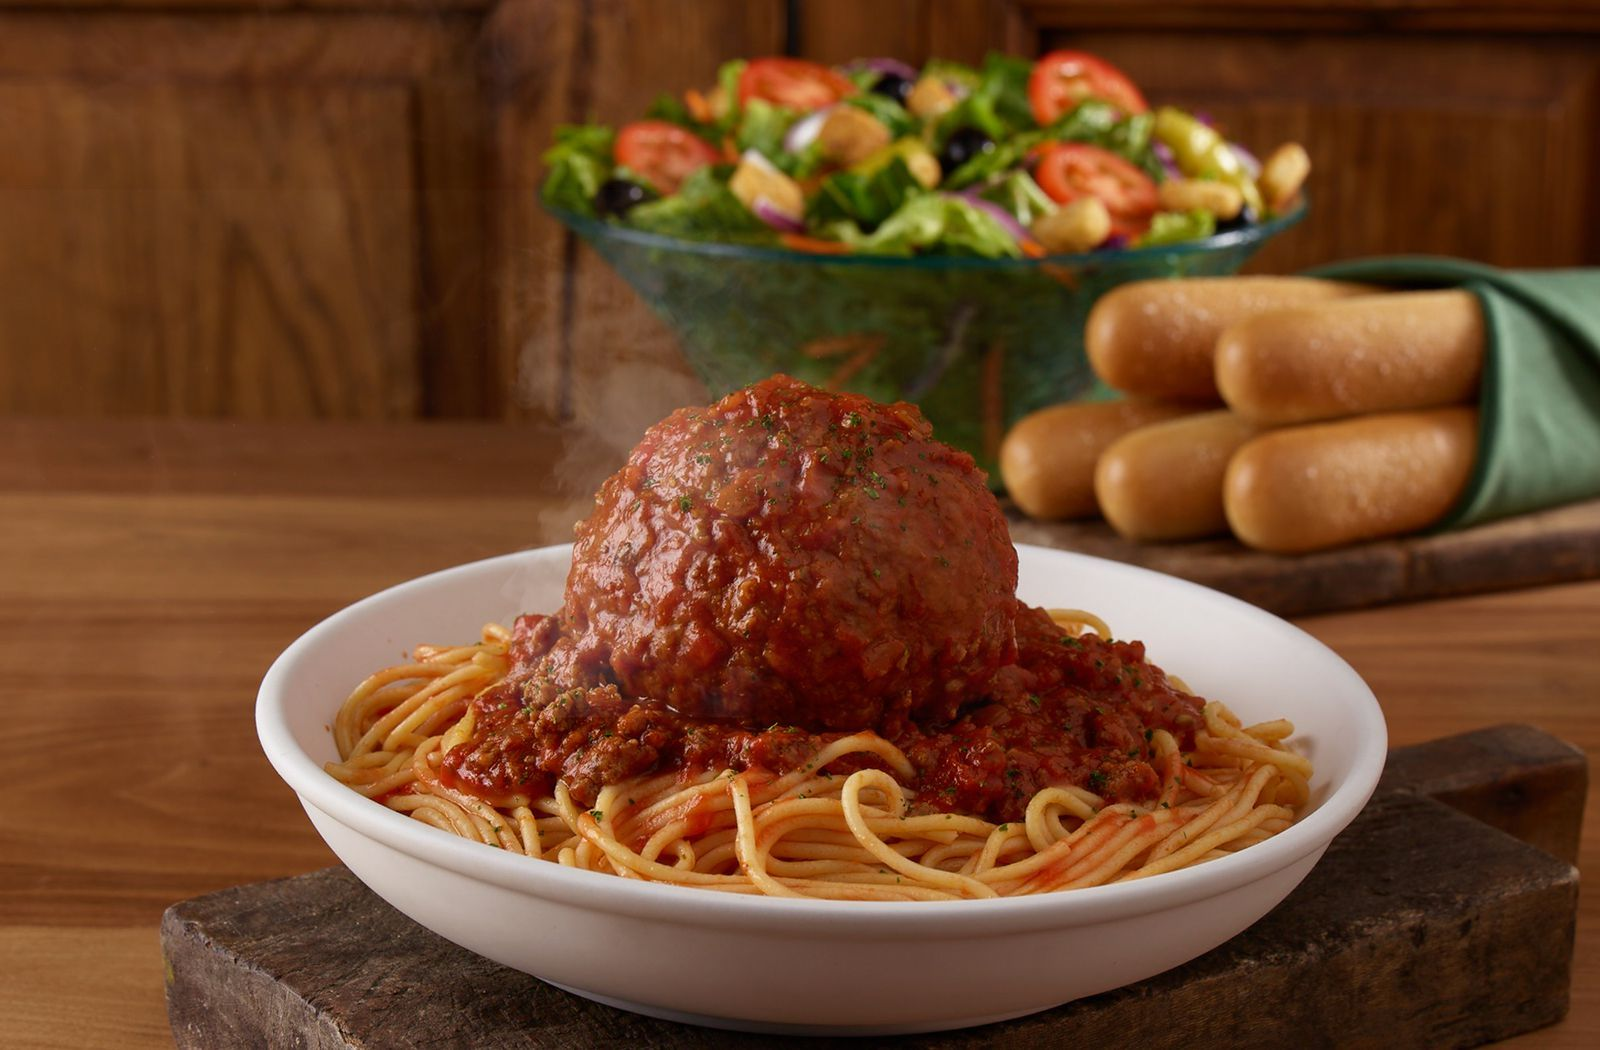 Olive Garden Is Adding A FootLong Chicken Parmesan To Its